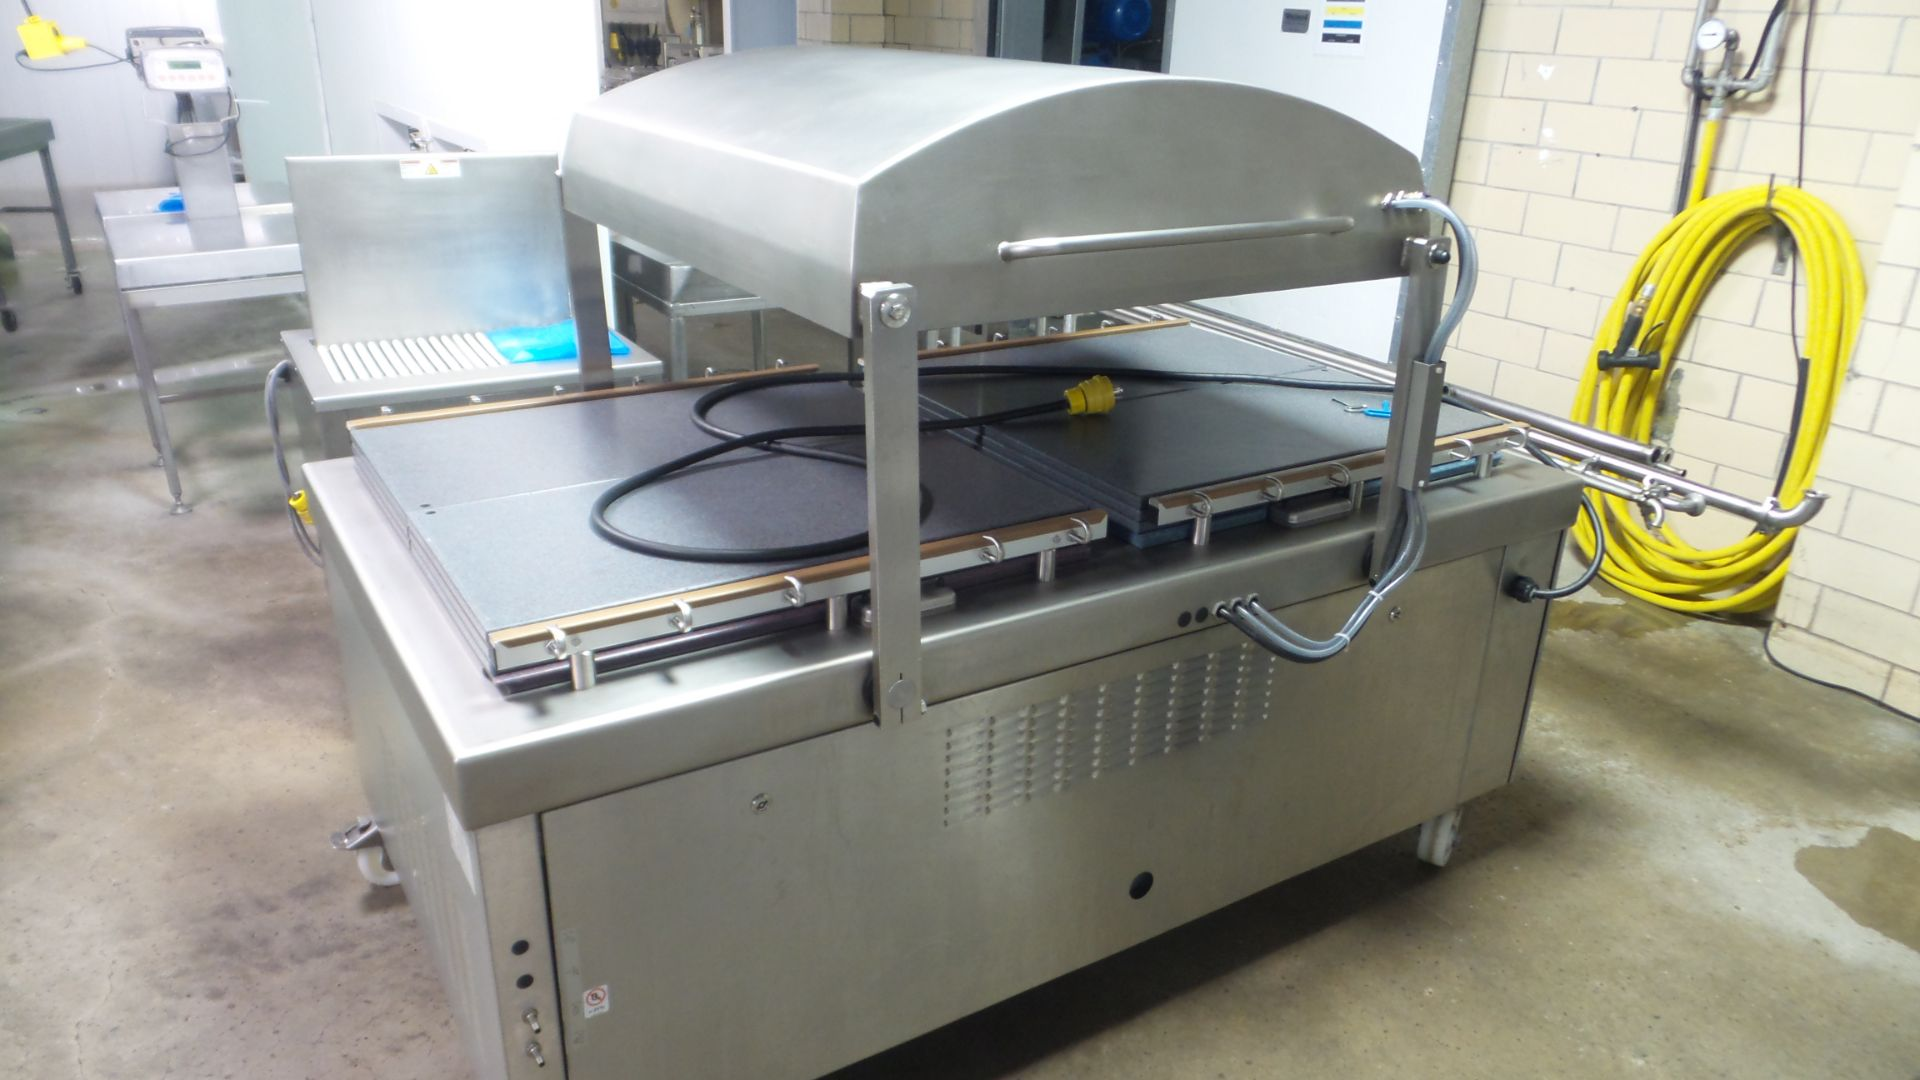 Lot 25 - Multivac Mdl. C550 Chamber Packaging Machine, Ser. #255939, mfg. 2018, 220 volts, 3 phase, 36 1/2""